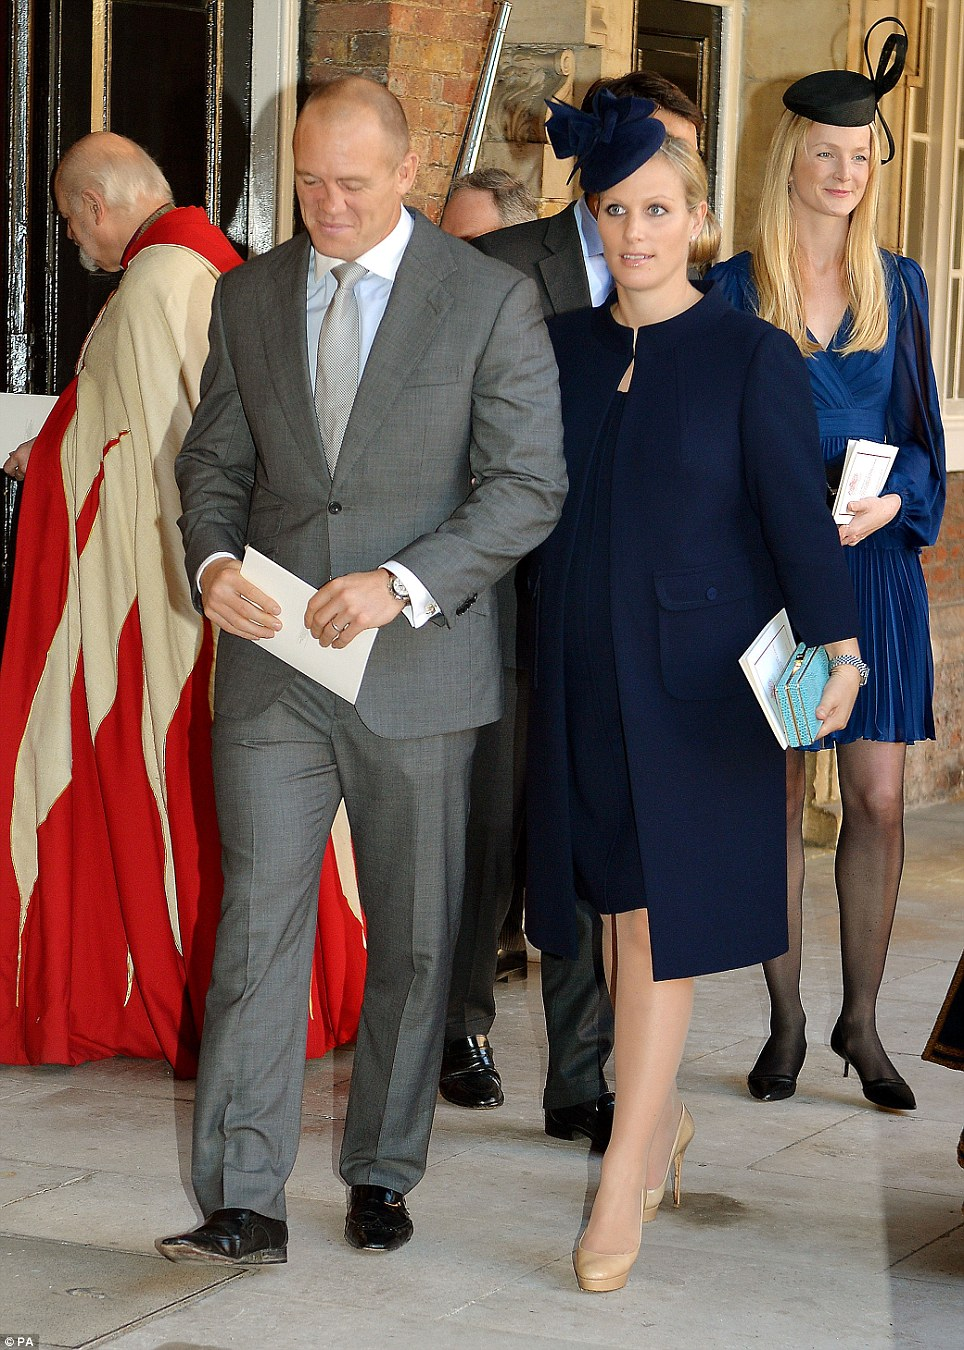 Prince George's godmother Zara Tindall, seen here with rugby-playing husband Mike, was chic in navy at the royal christening - behind her is William van Cutsem's wife, Rosie